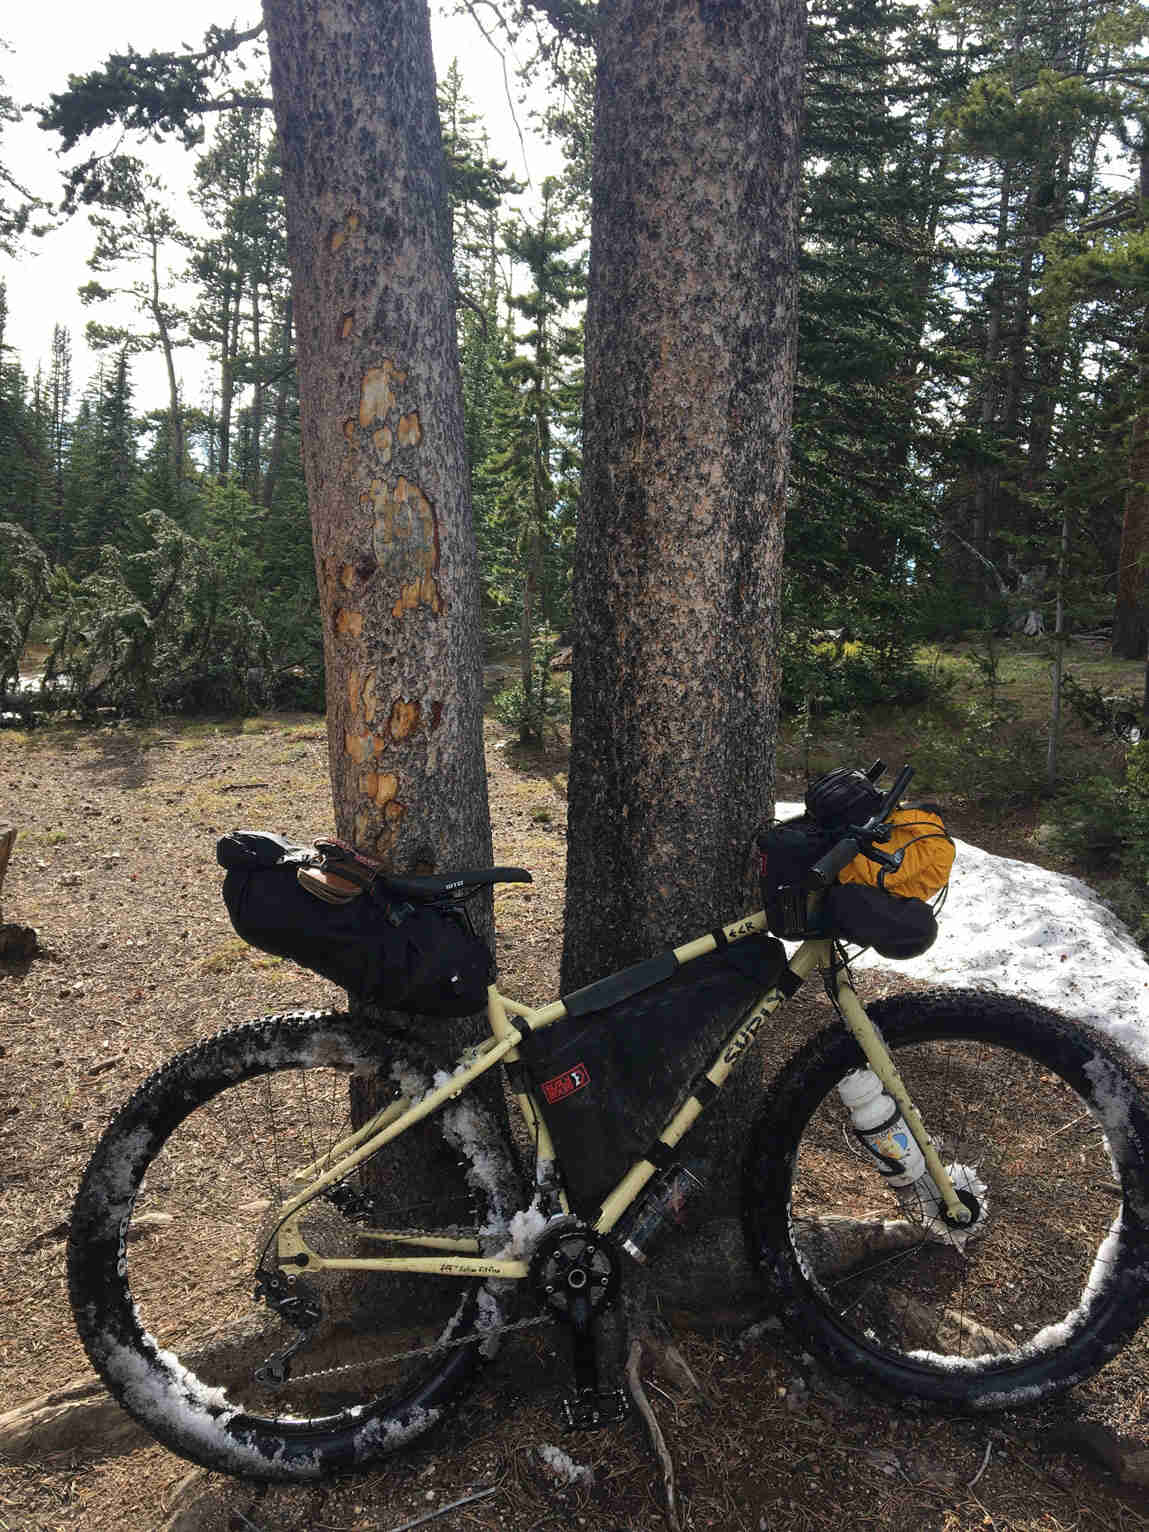 Right view of a Surly ECR bike, full of gear, leaning on 2 trees, with the forest in the background